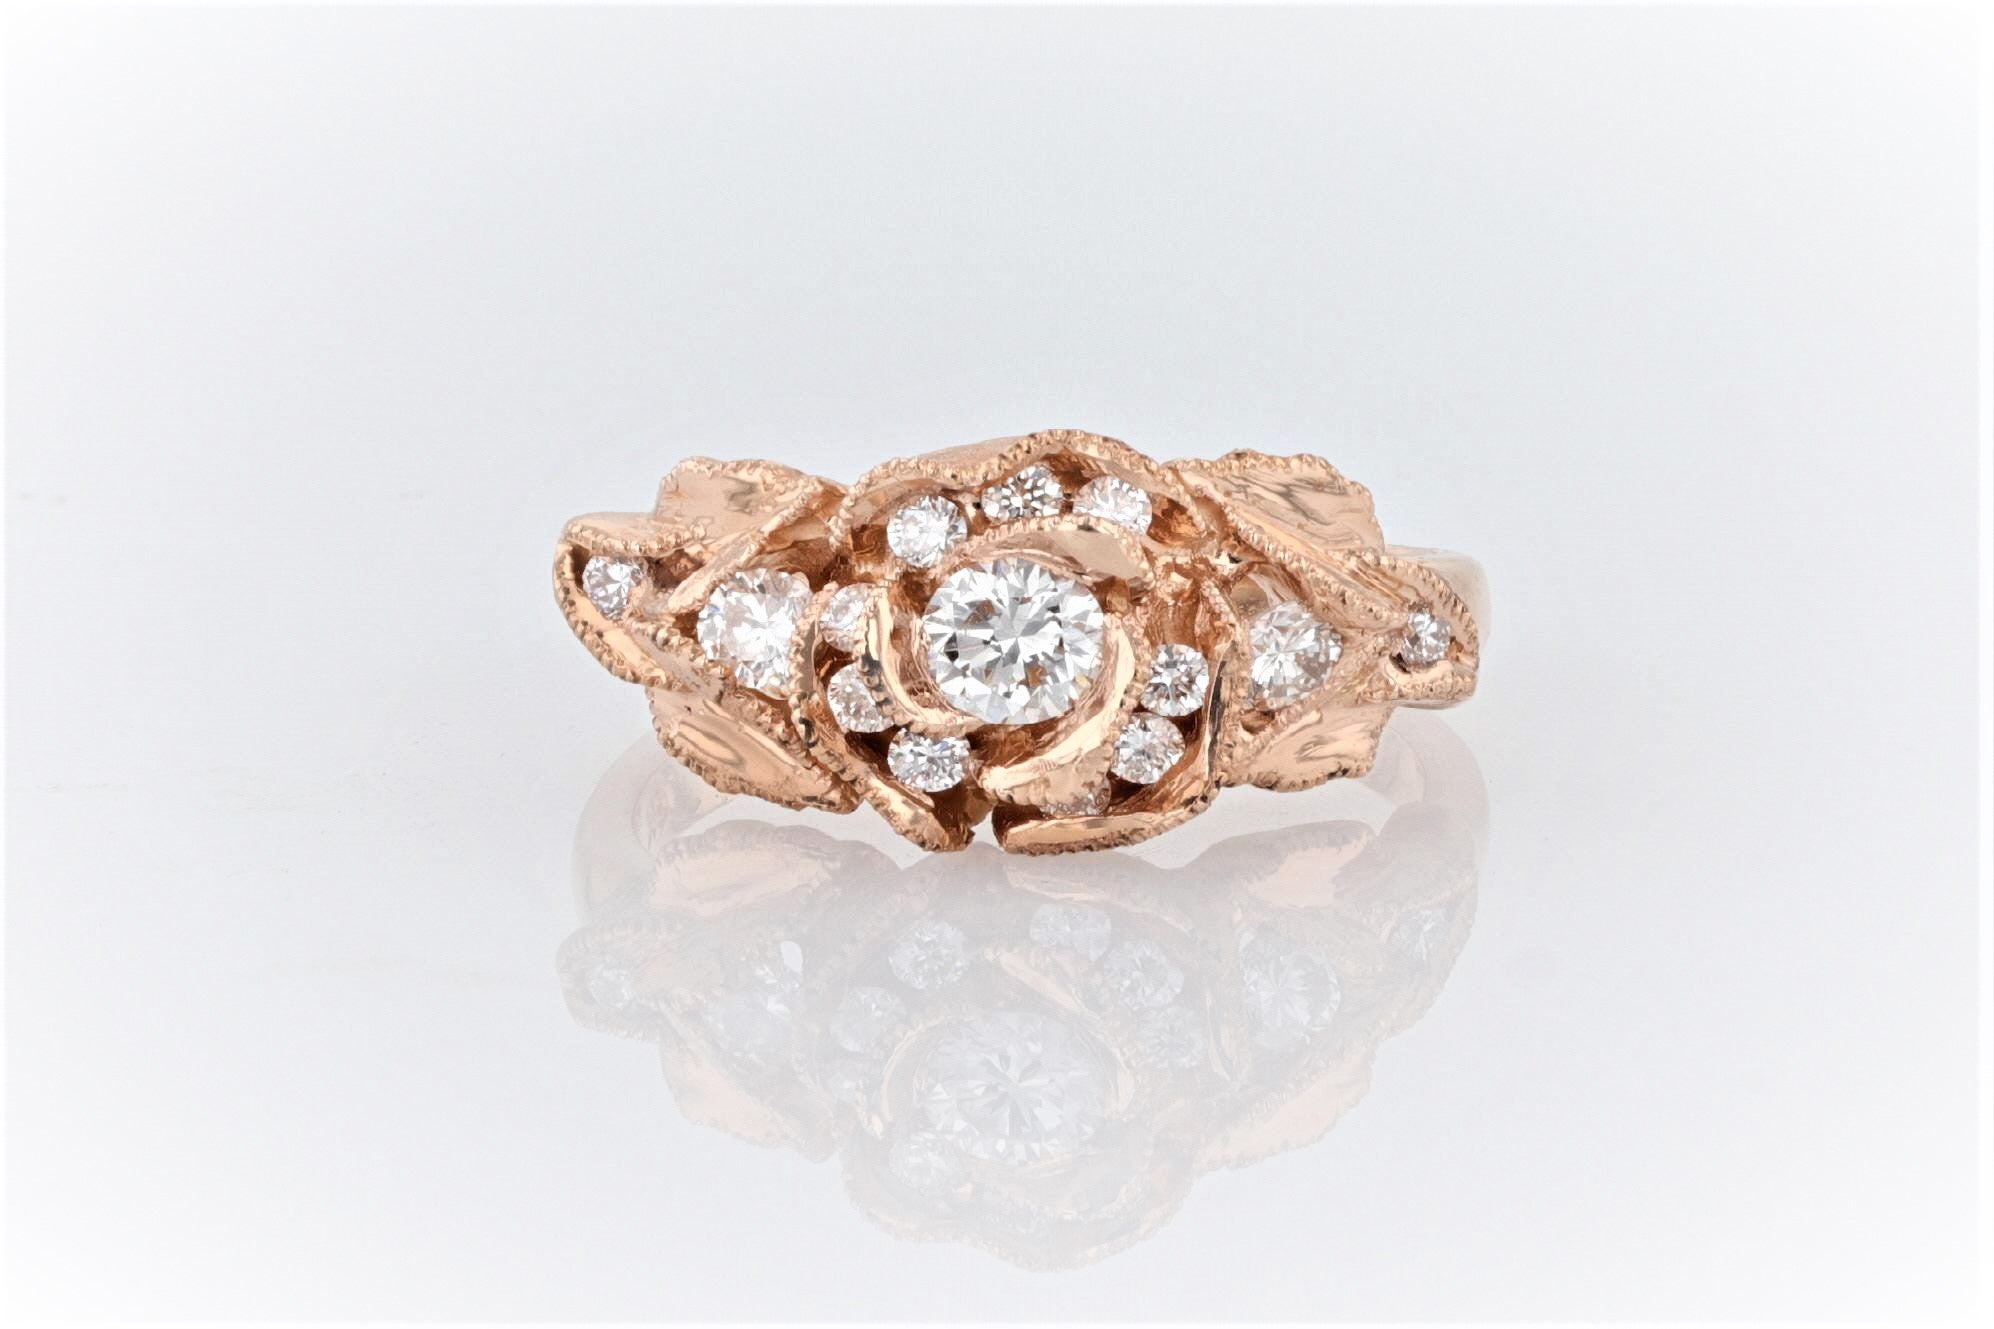 18K Women's Rose Gold (Stamped) Shank Dress Ring